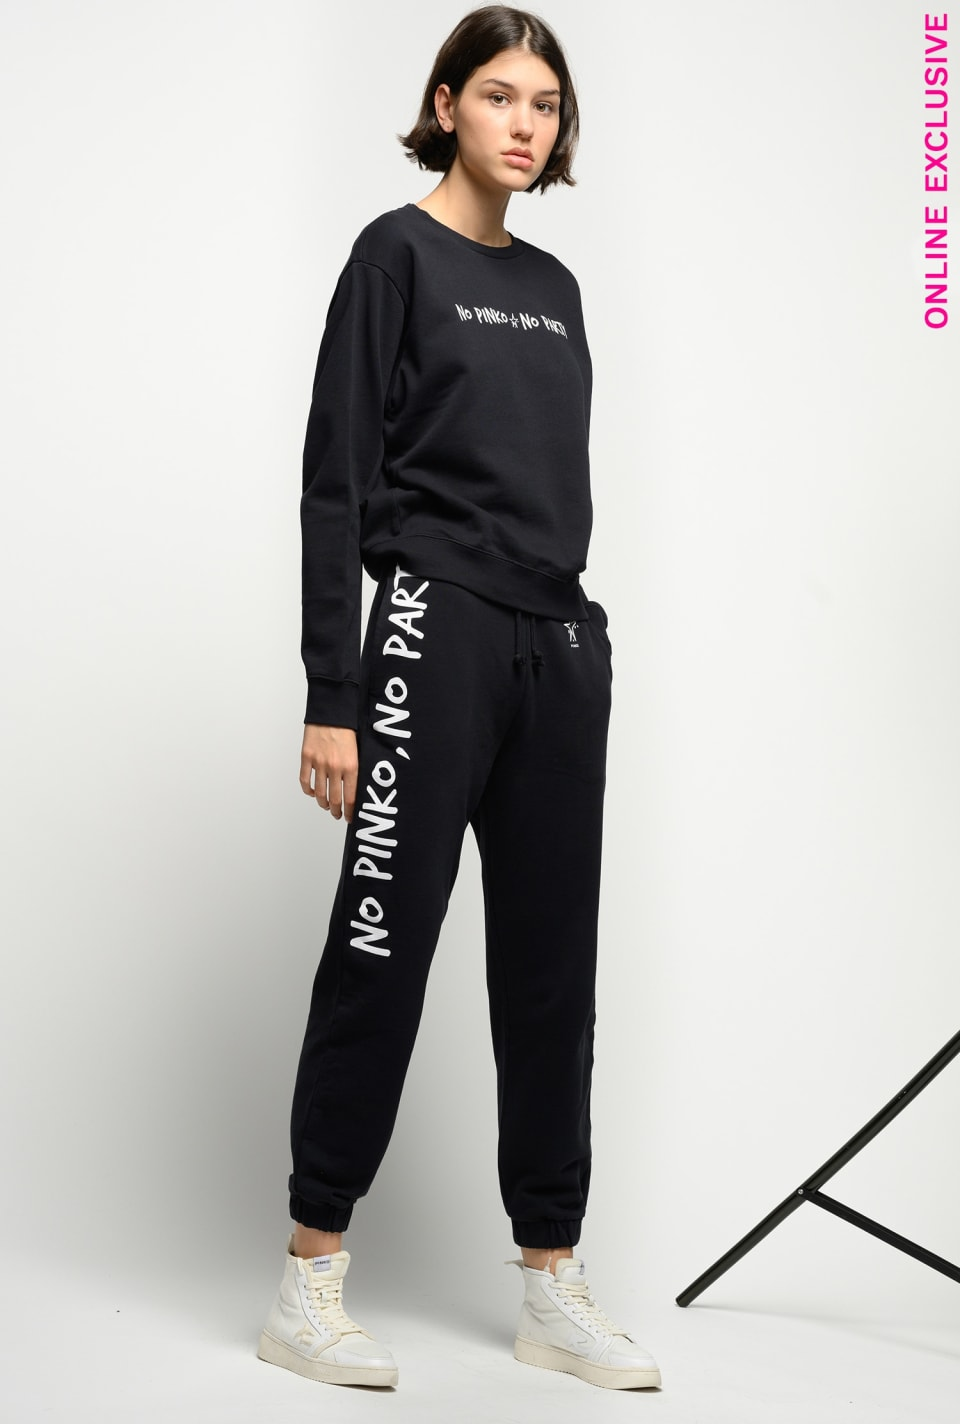 Pantalon de jogging en molleton No PINKO No Party - Pinko